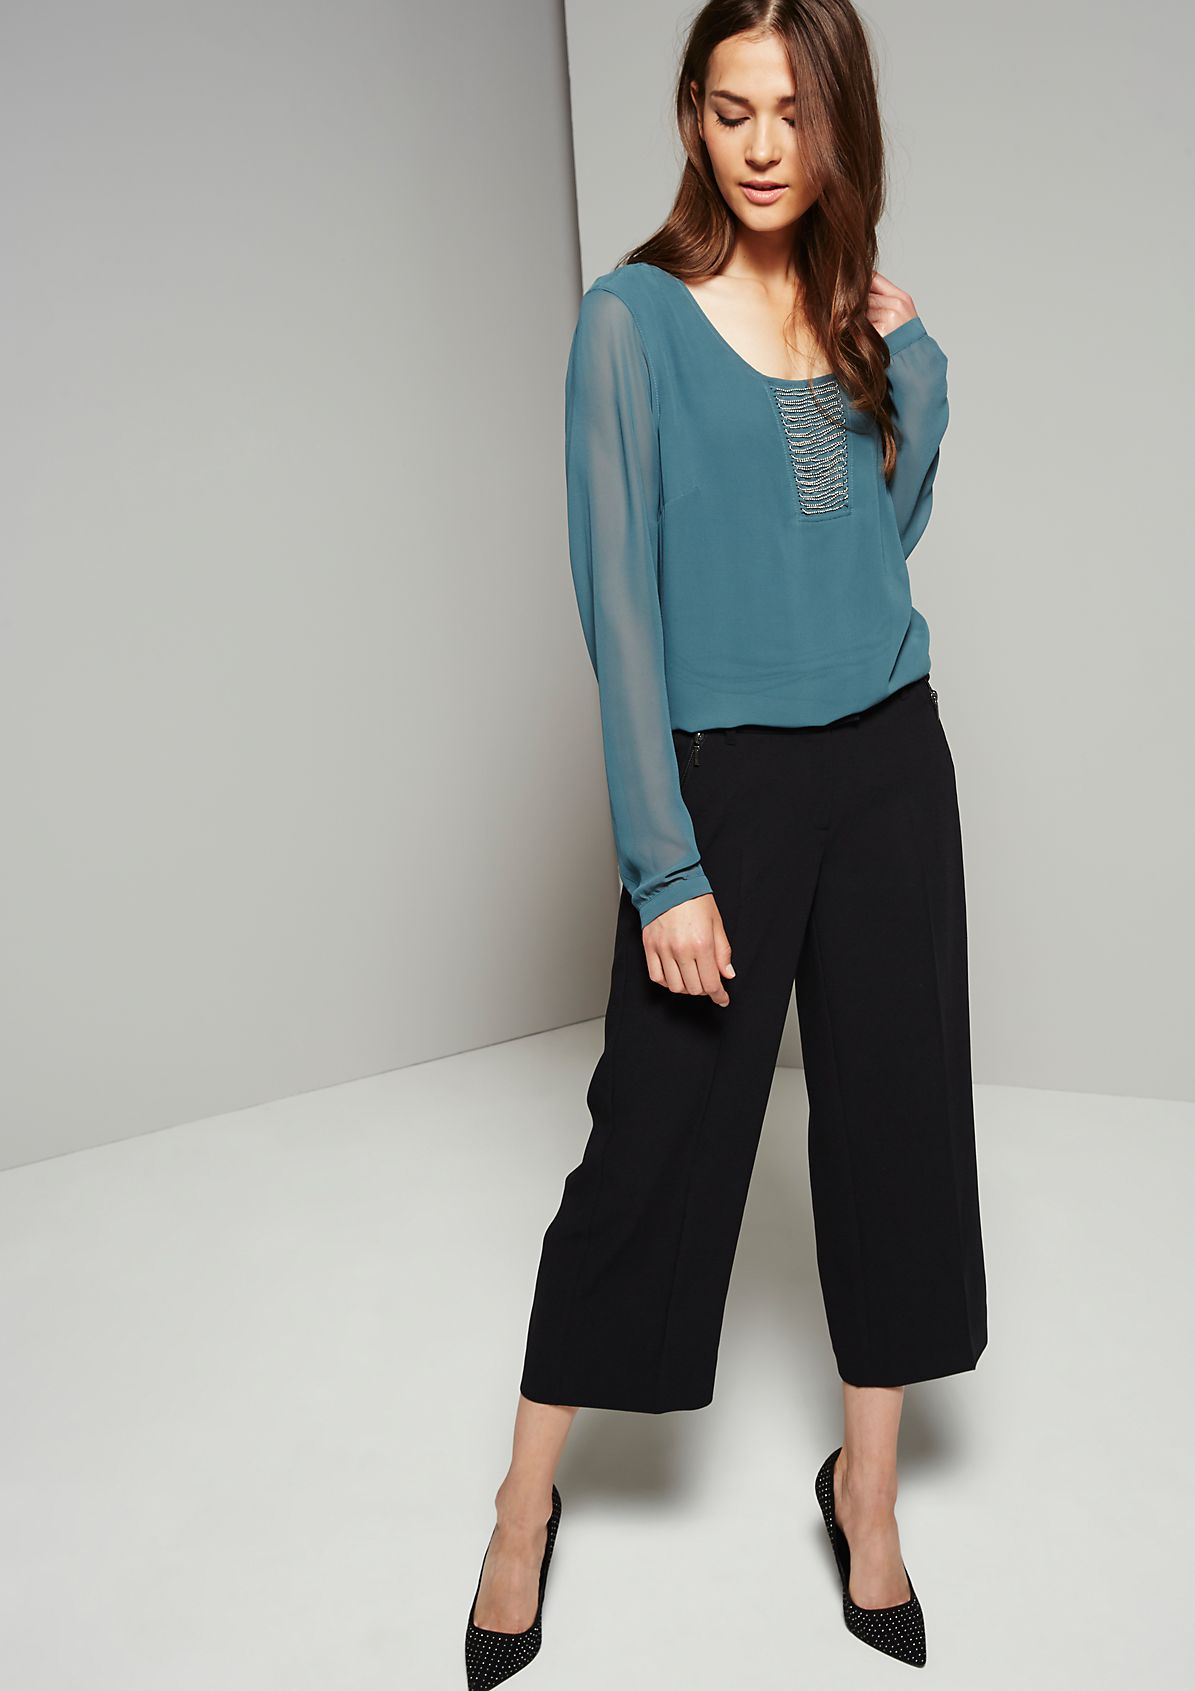 Delicate long sleeve blouse with a sparkling chain trim from s.Oliver